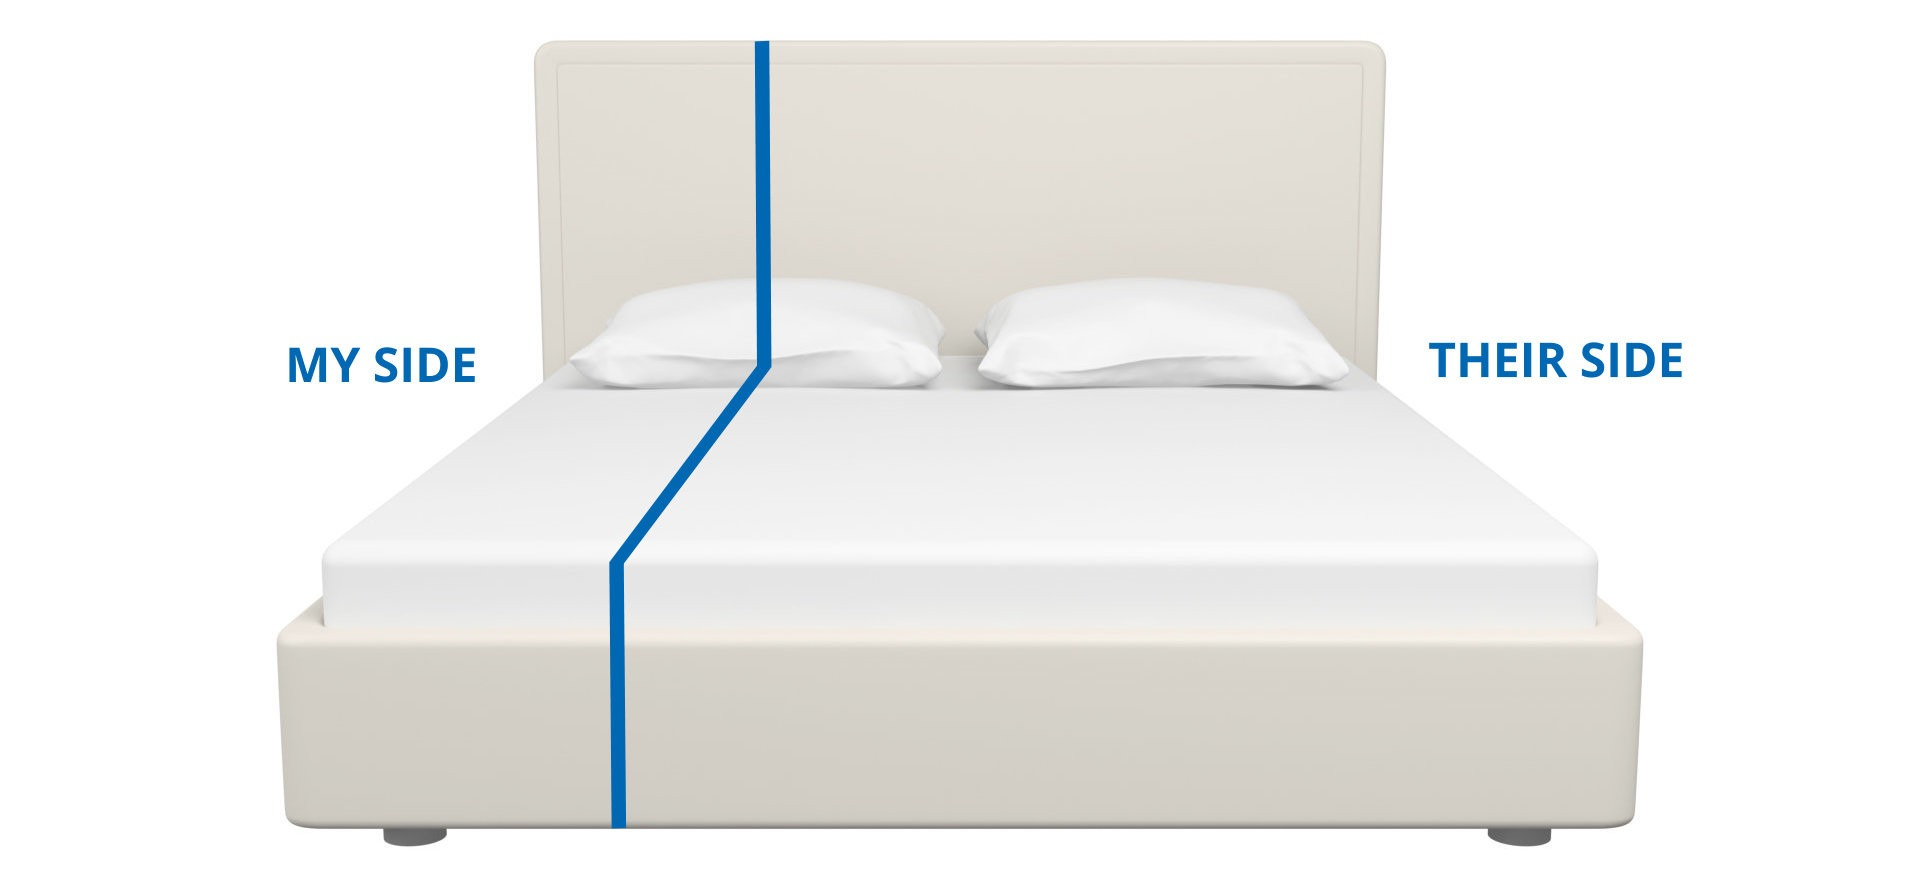 Uk Mattress Sizes Bed Sizes Uk Bed And Mattress Size Guide National Bed Federation